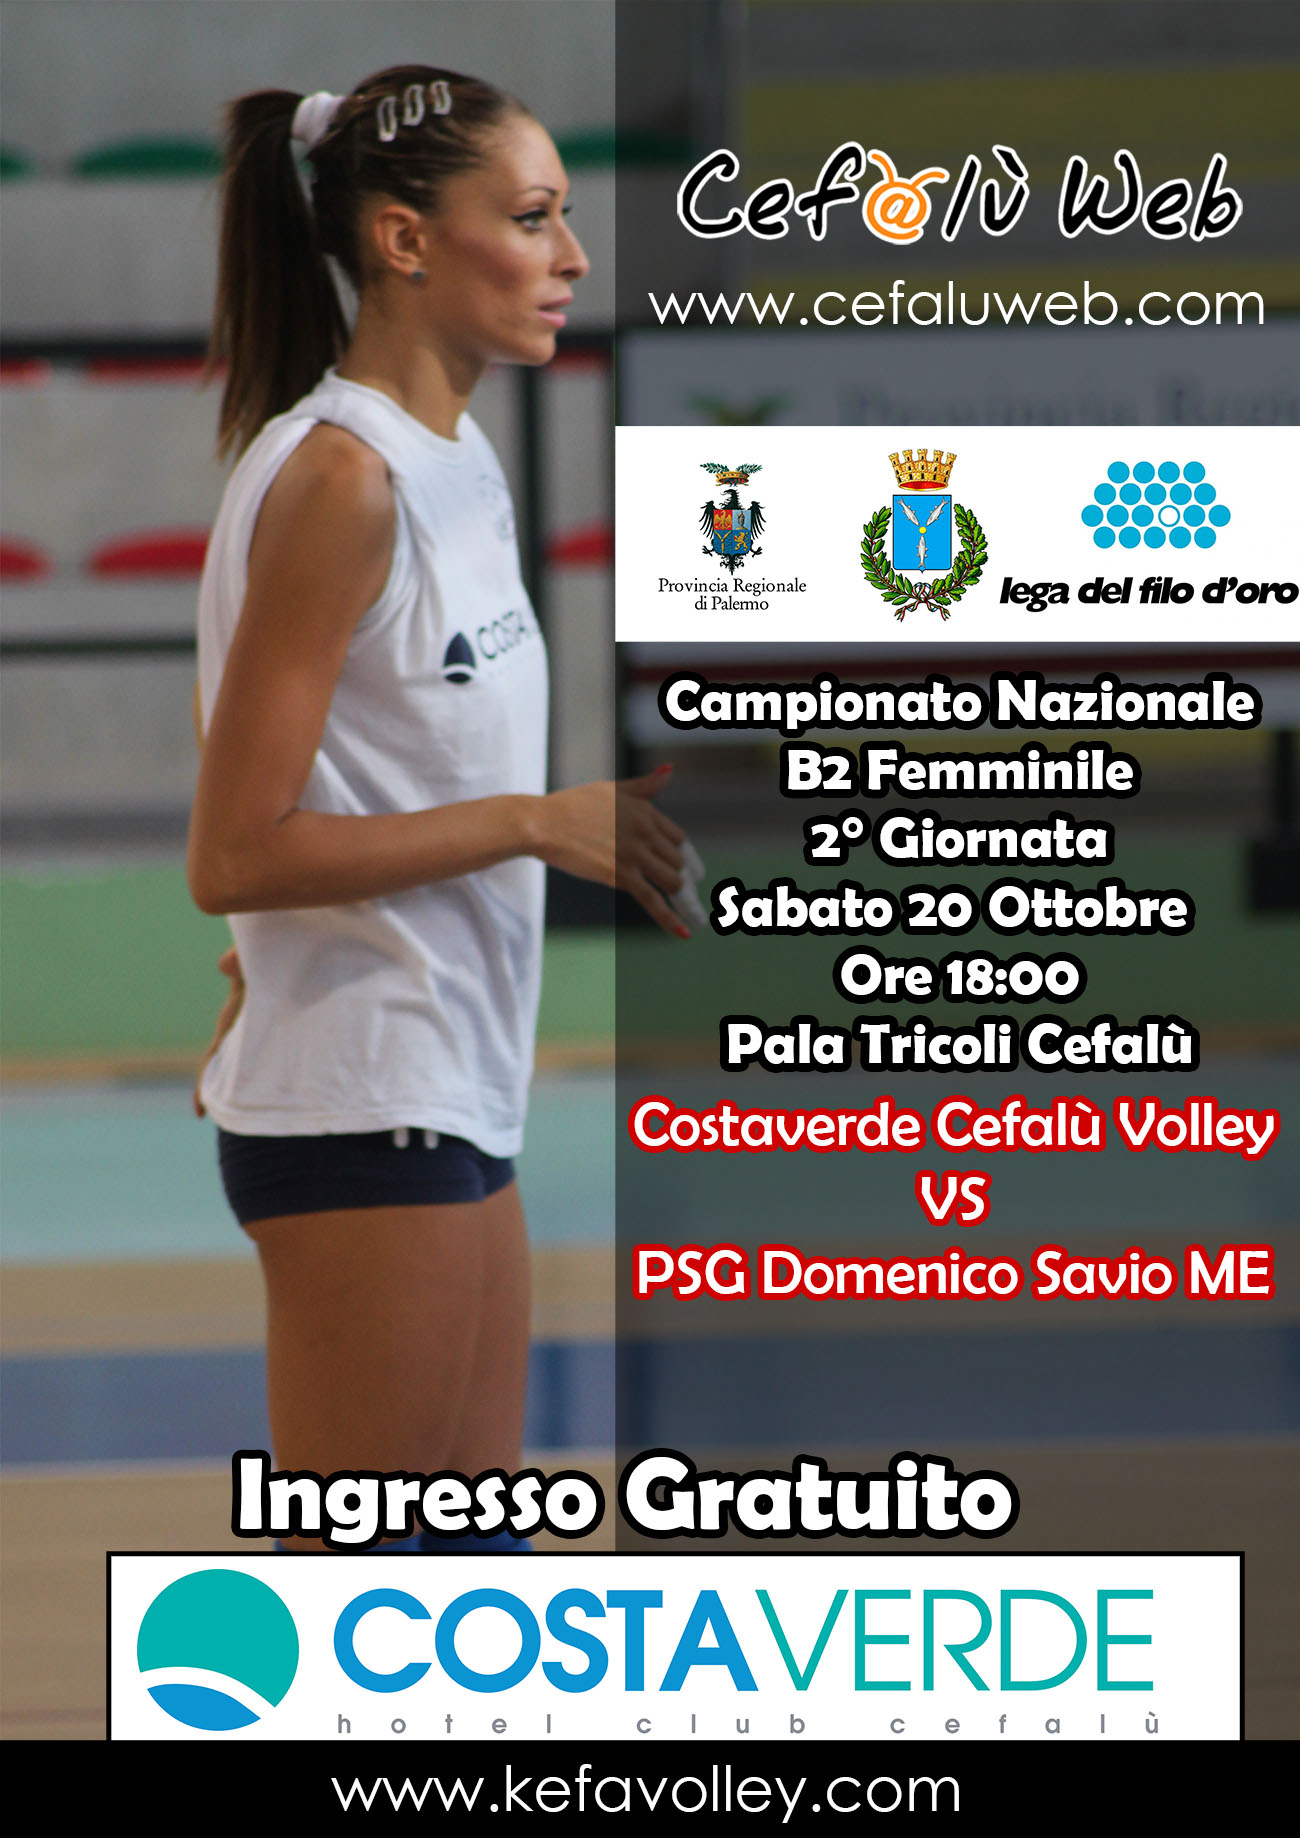 Esordio in casa per la Costaverde Volley Cefalù